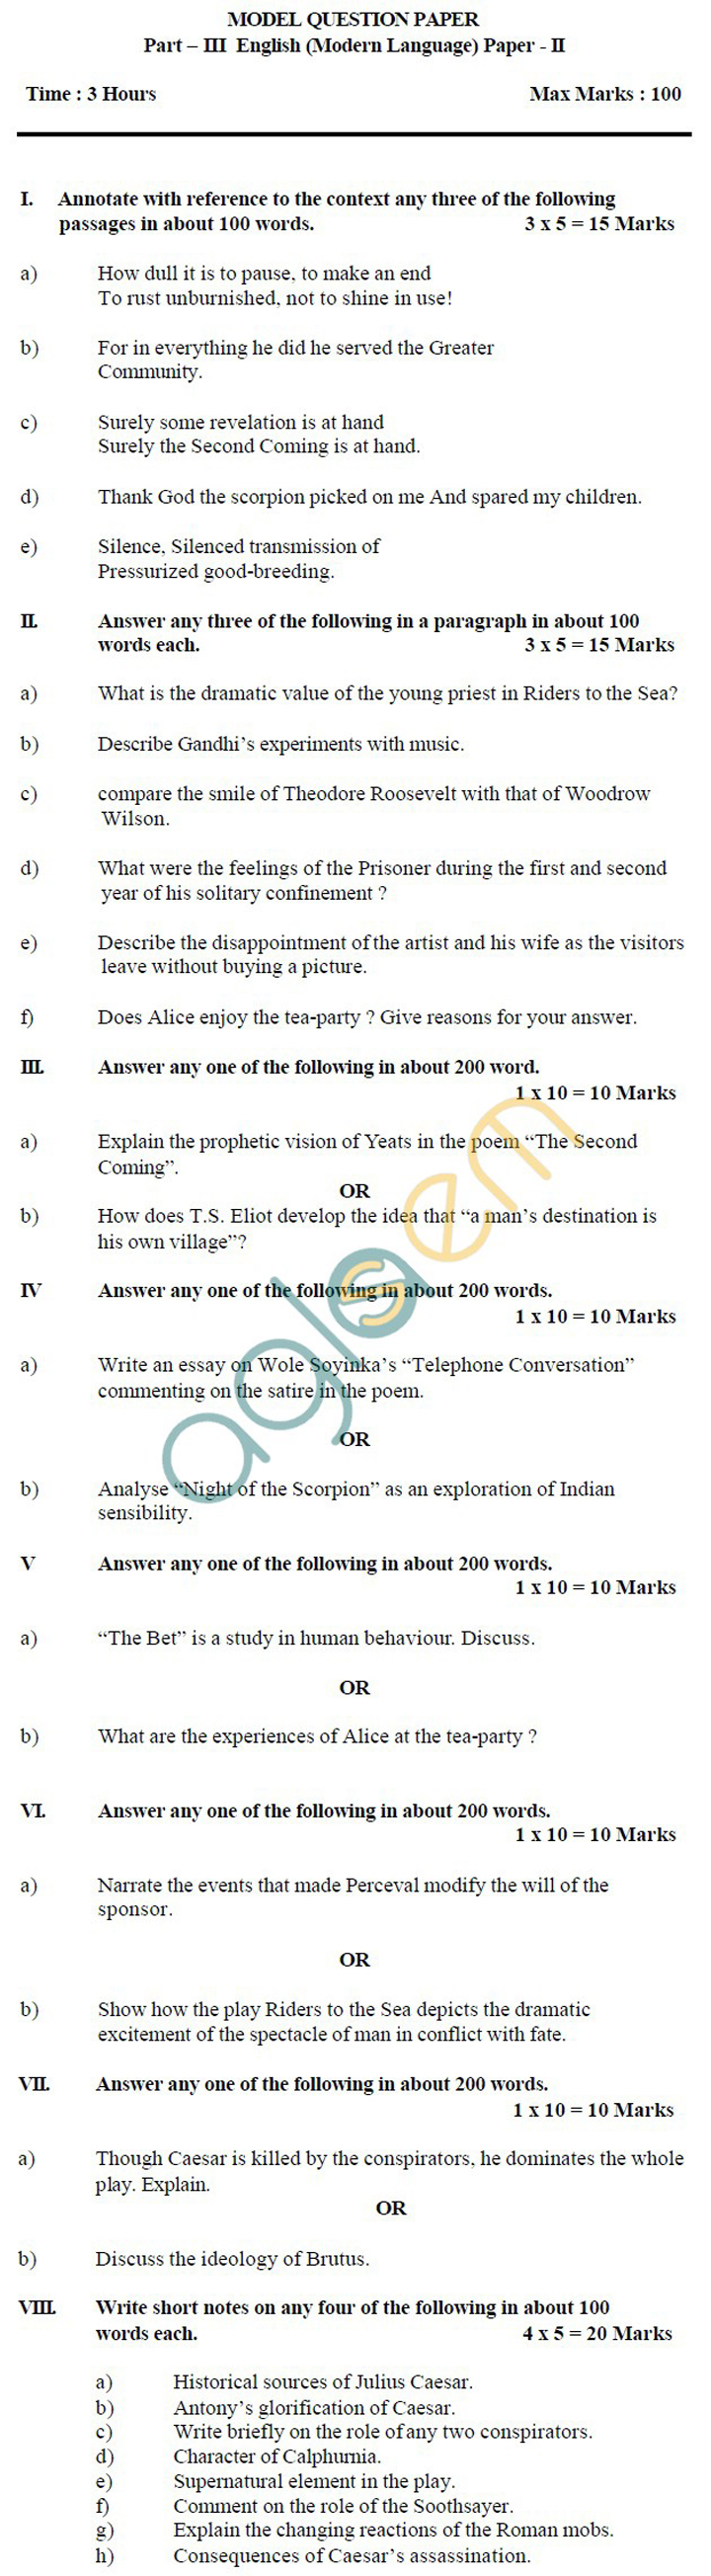 AP Board Intermediate II Year Eanglish Model Question Paper